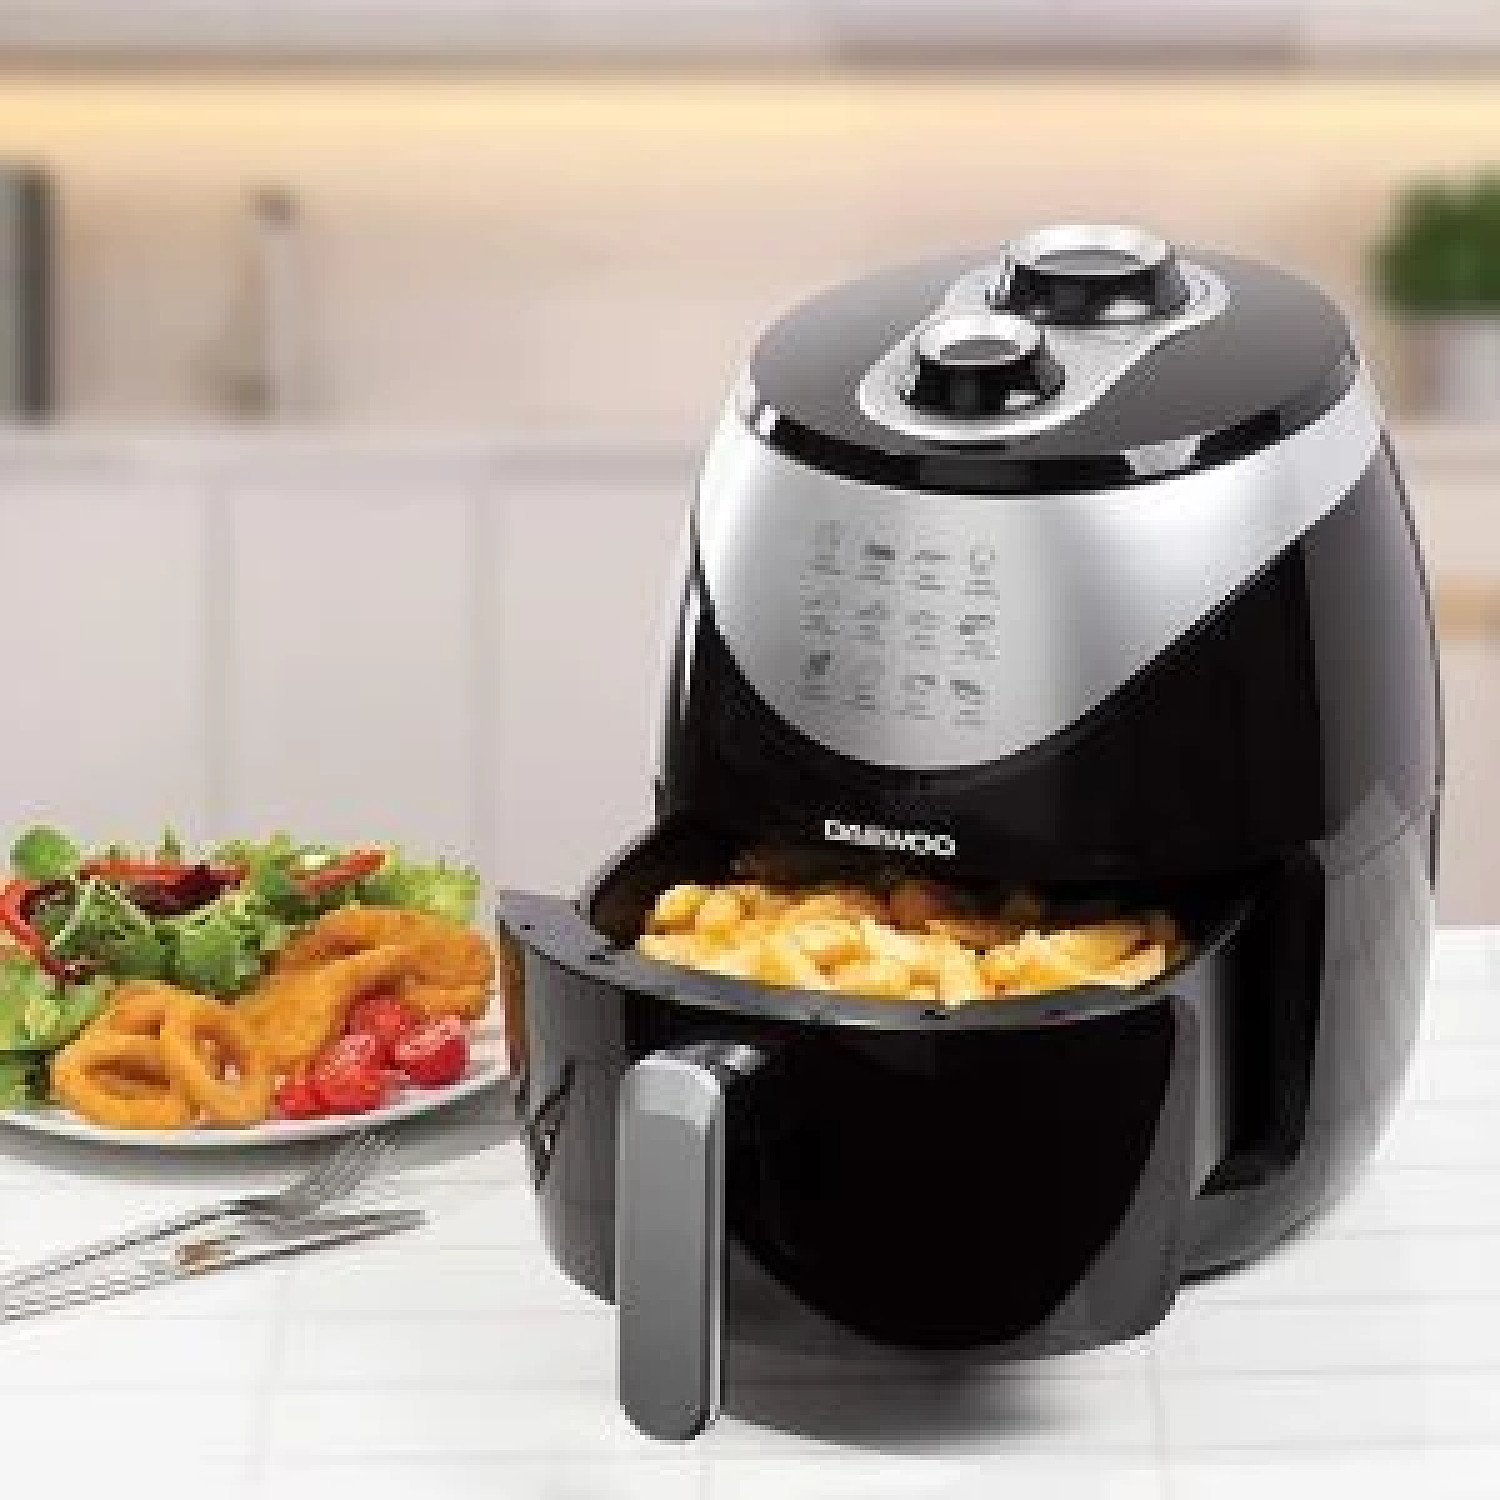 Daewoo 4Lt Healthy Digital Hot Air Fryer Low Fat No Oil Non-Stick Cooking Black Free Postage